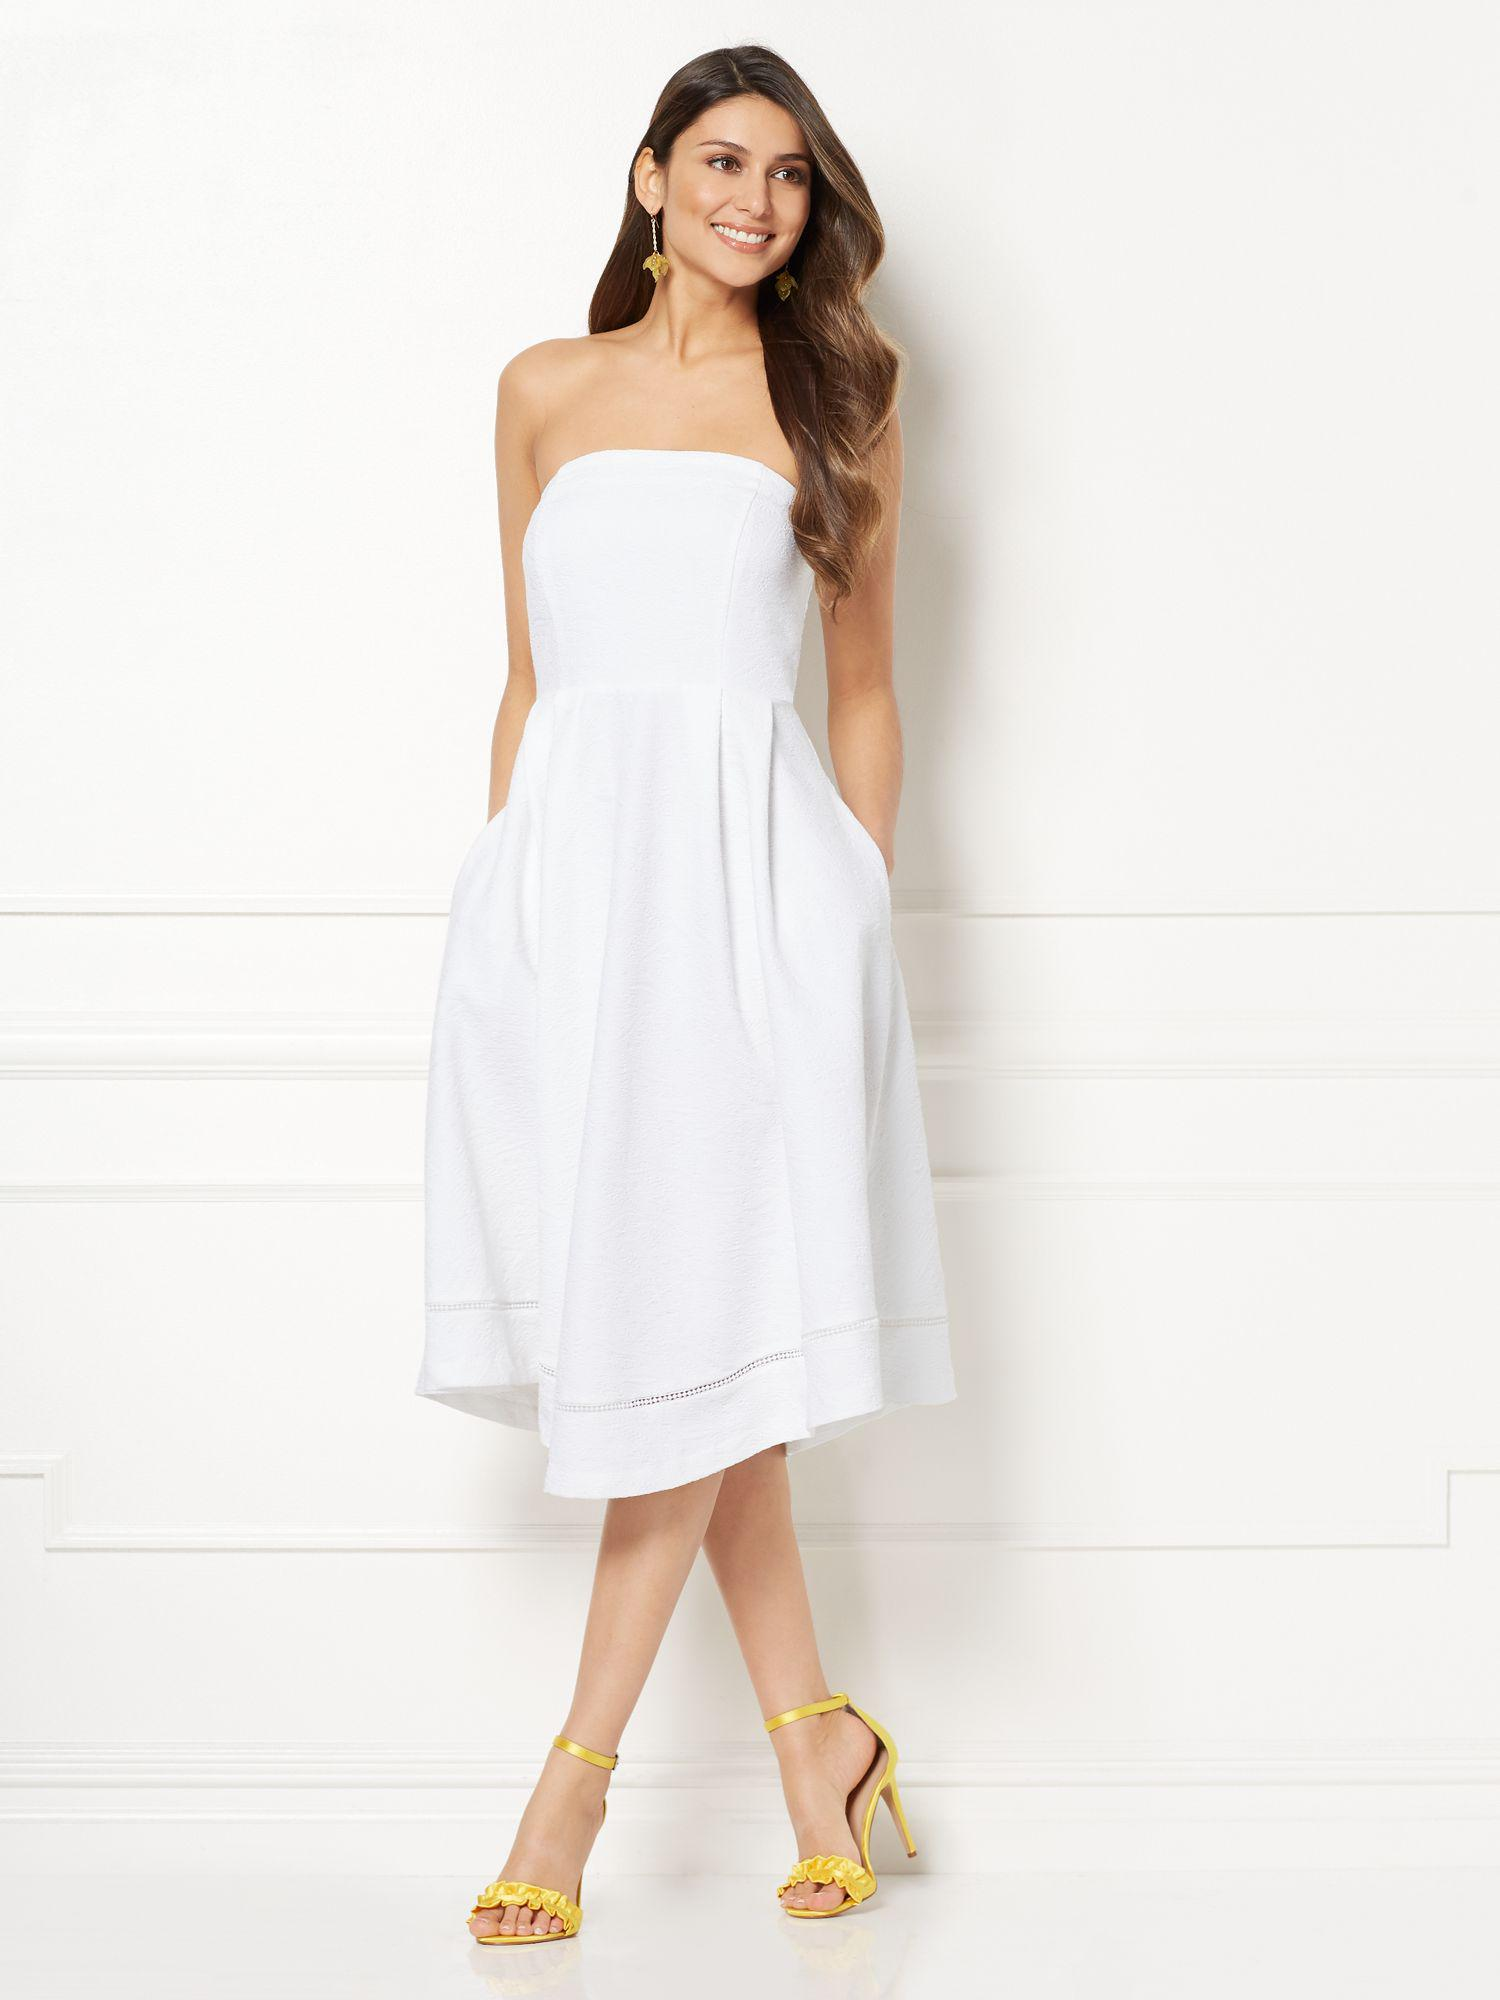 2f63ffbbf3 New York   Company Eva Mendes Collection - Megan Strapless Dress in ...